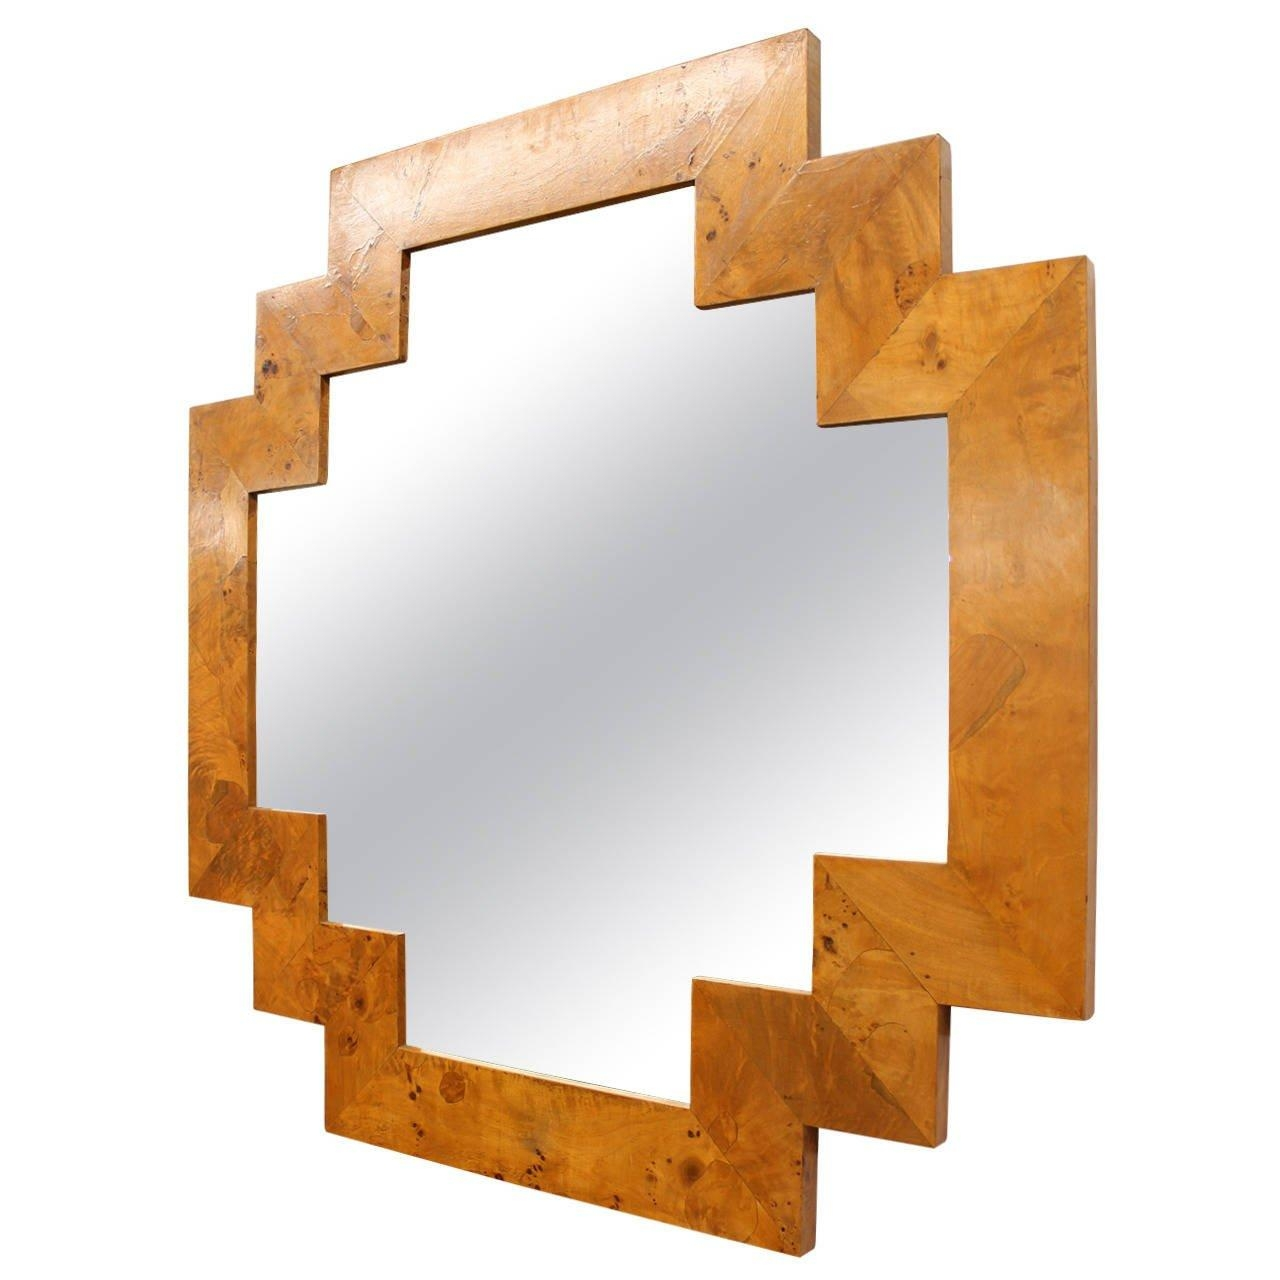 Art Deco Style Geometric Italian Burl Wood Wall Mirror At 1Stdibs For Italian Wood Wall Art (Image 3 of 20)